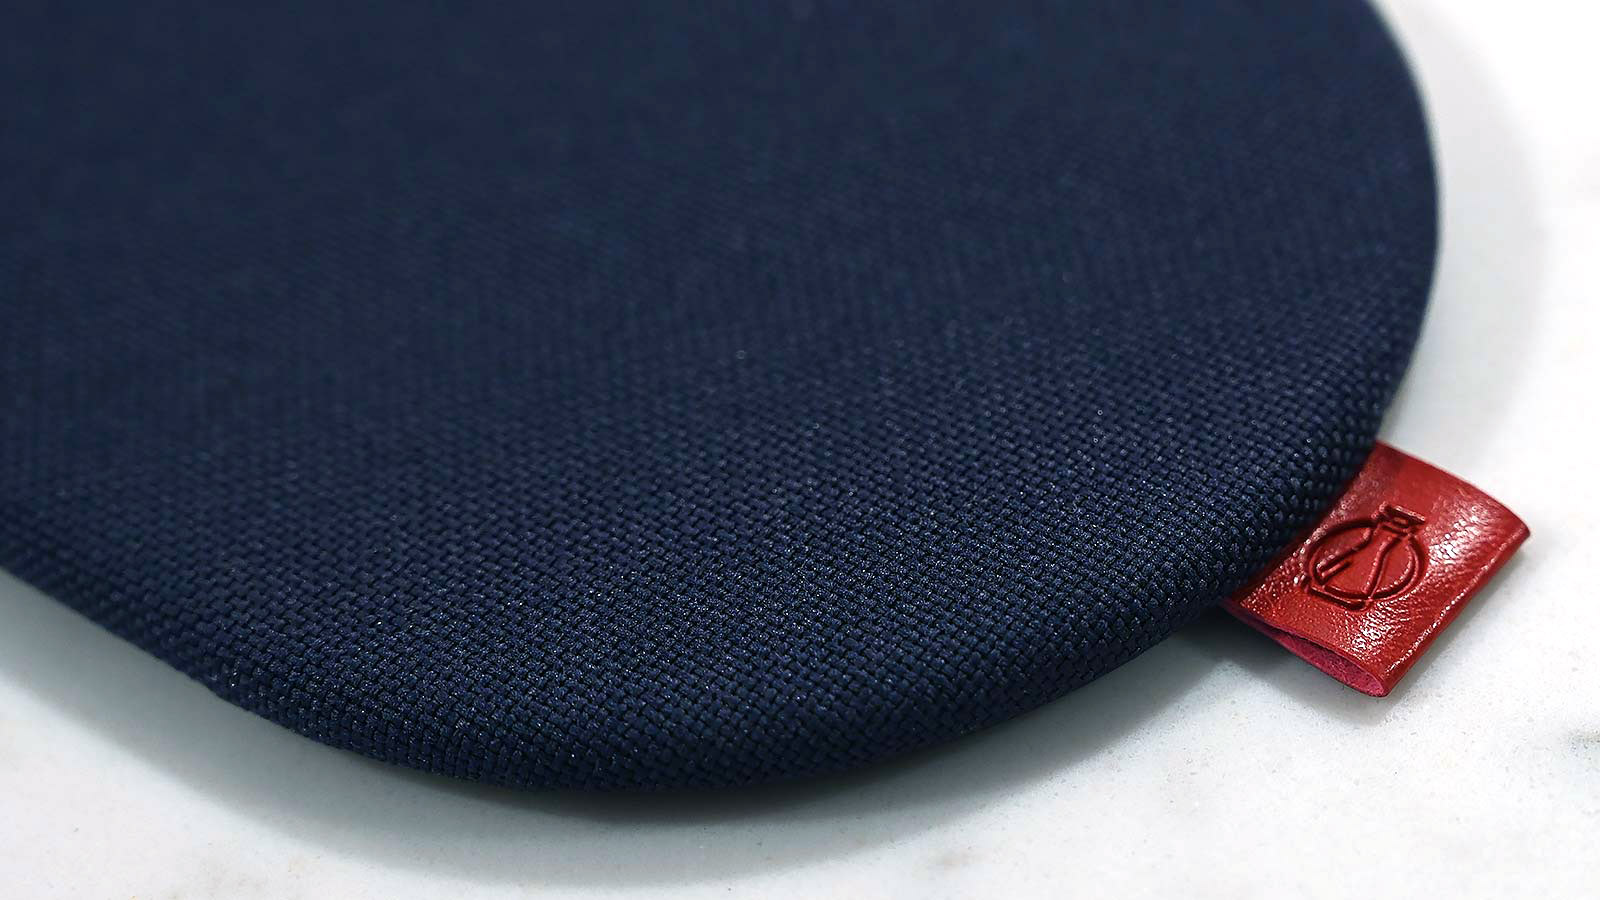 The SliceCharge features a fabric cover to help protect your gadgets from scratches.